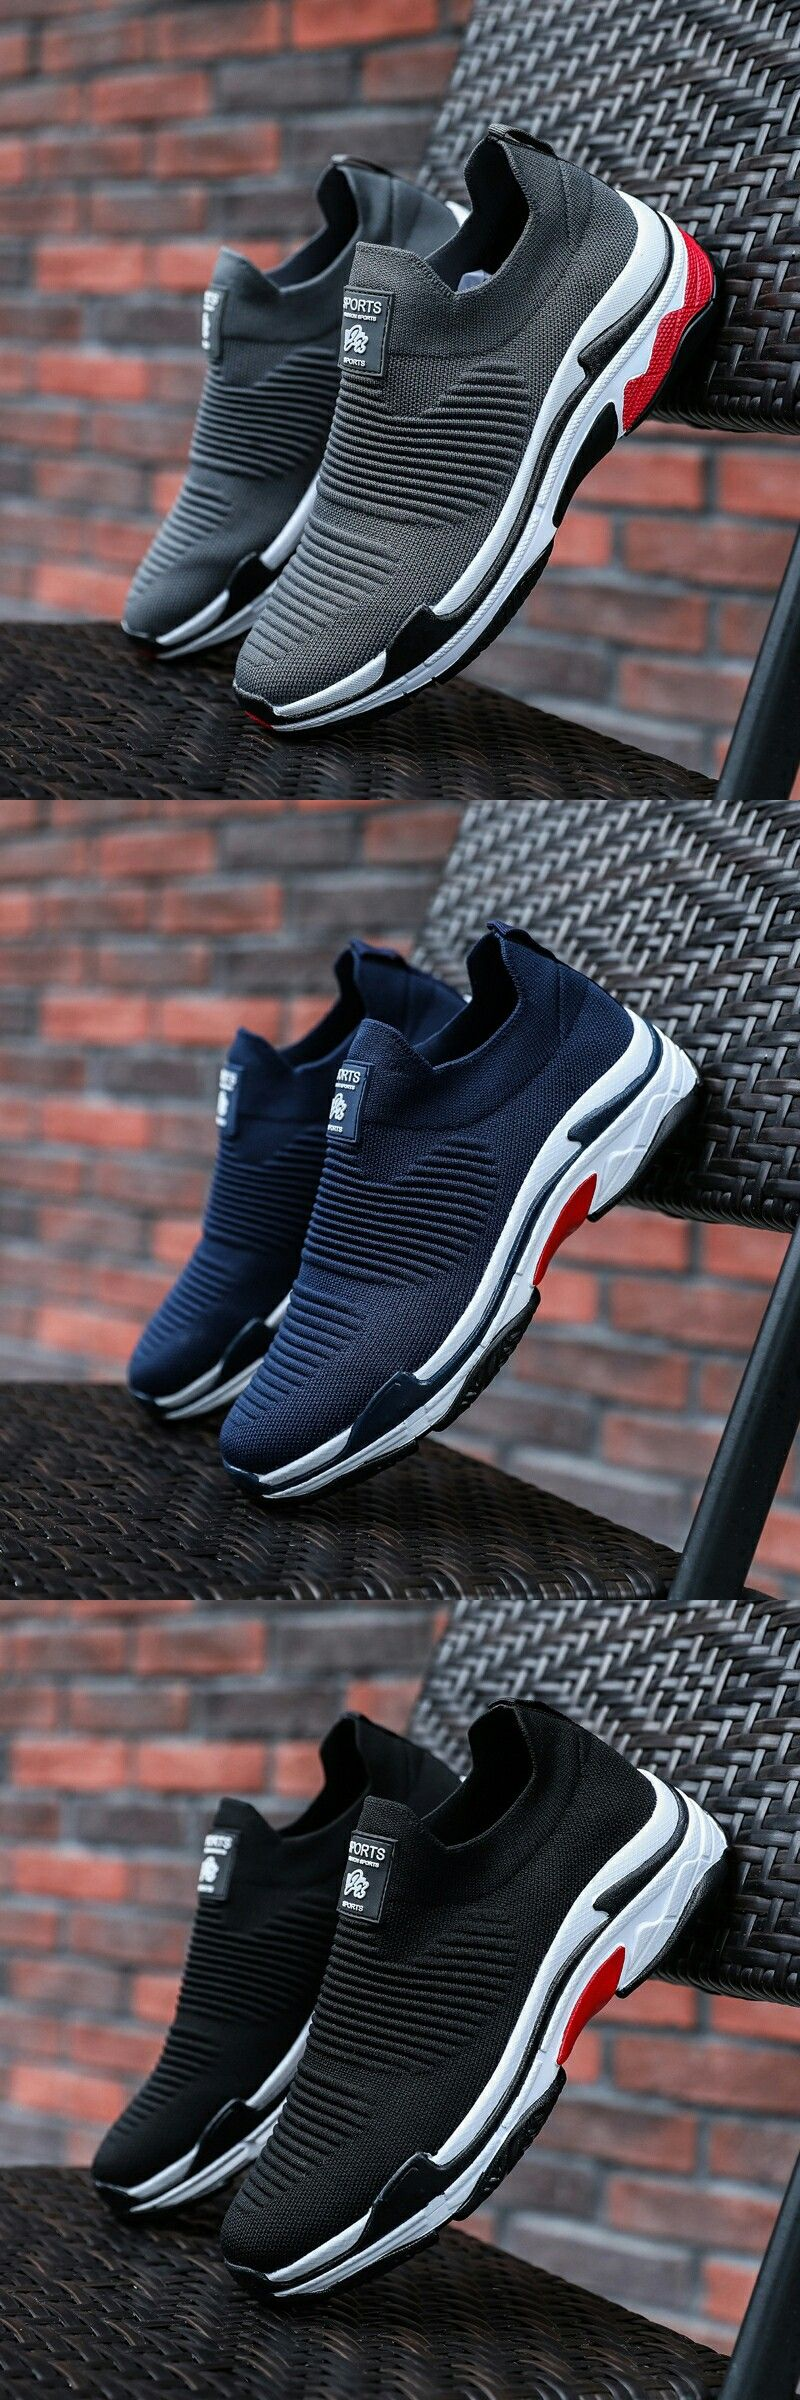 US  28.03  Click to buy  Prikol Luxury Brand Men Tennis Shoes Summer Sports  Sock Shoes Wearable High Quality Knitted Sneaker Zapatillas Calcado Street 6582a4734f